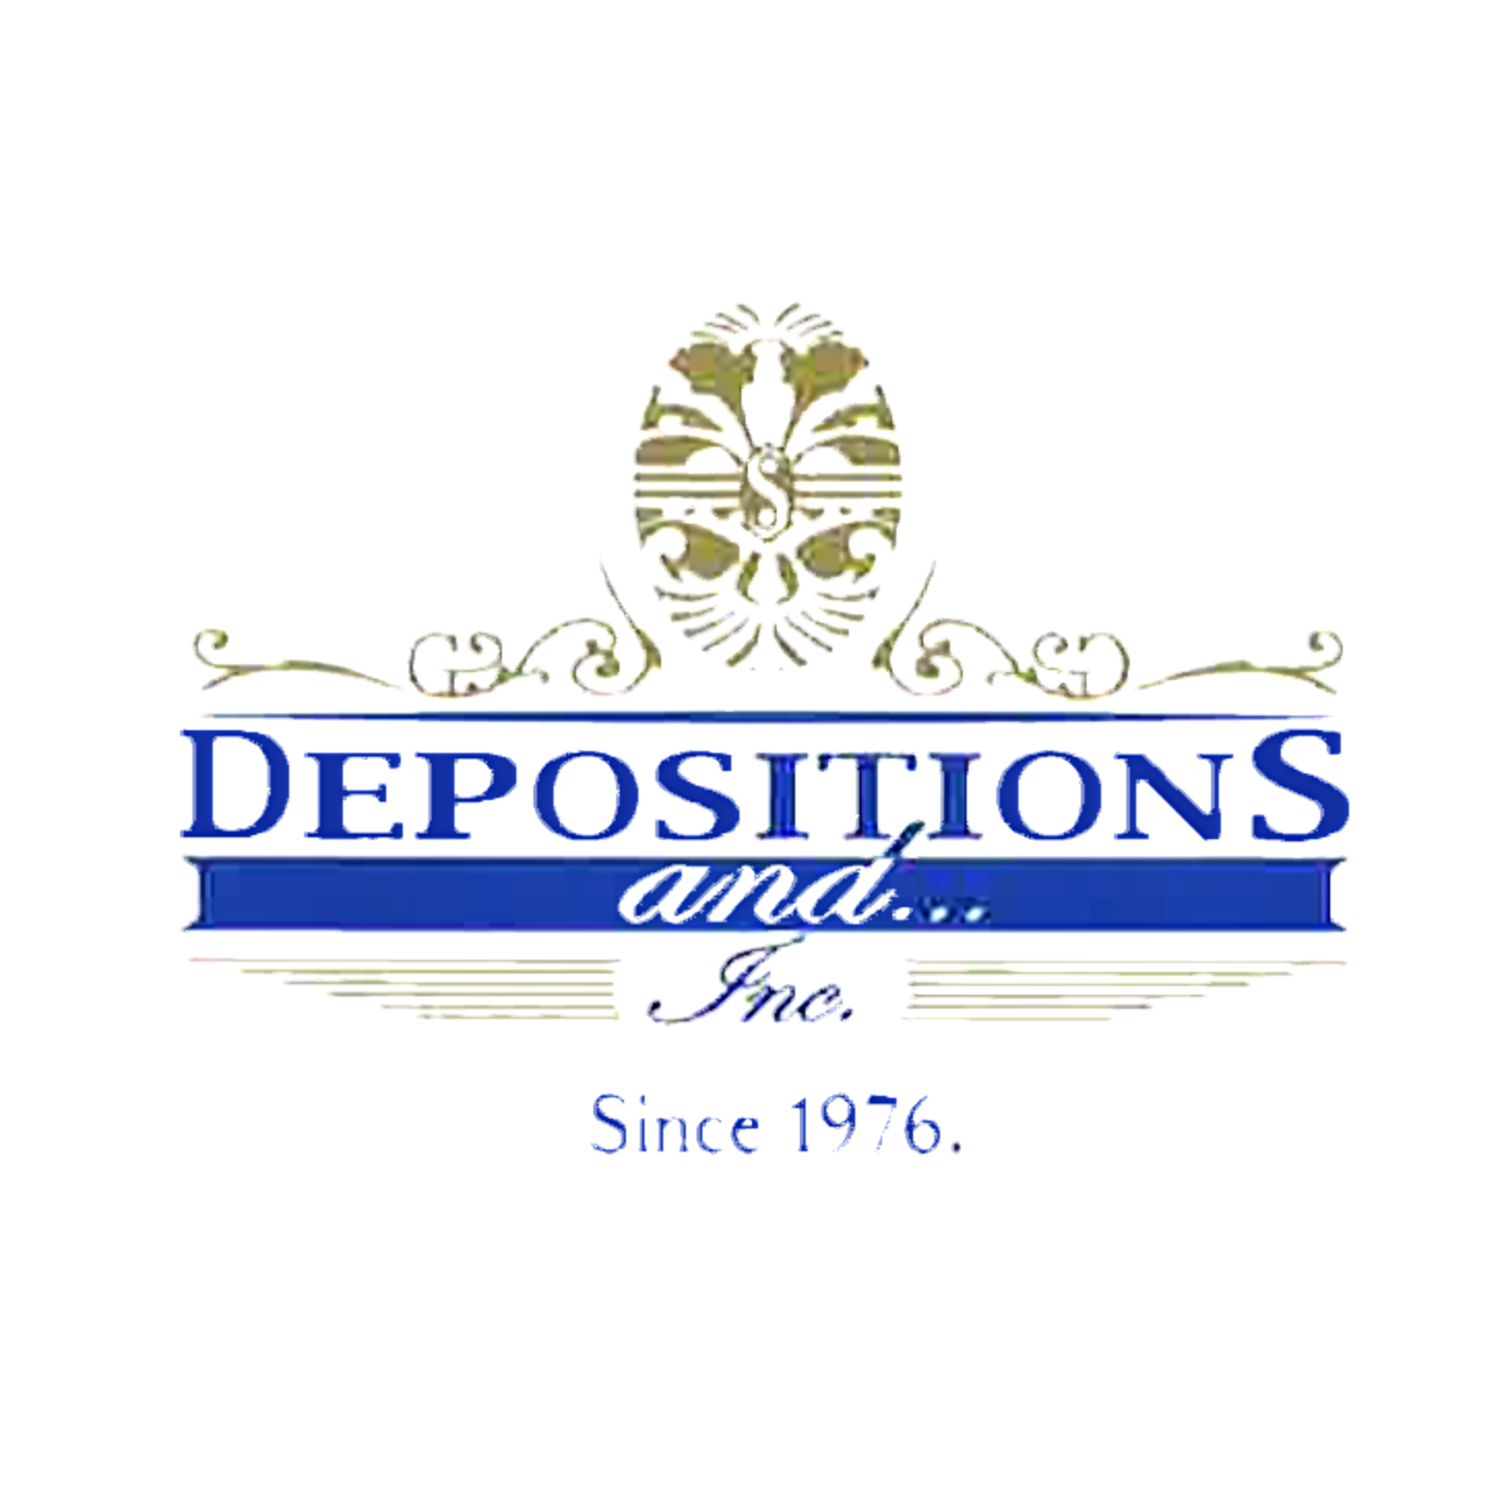 Depositions and Inc. - Professional, precise and preferred court reporting services.